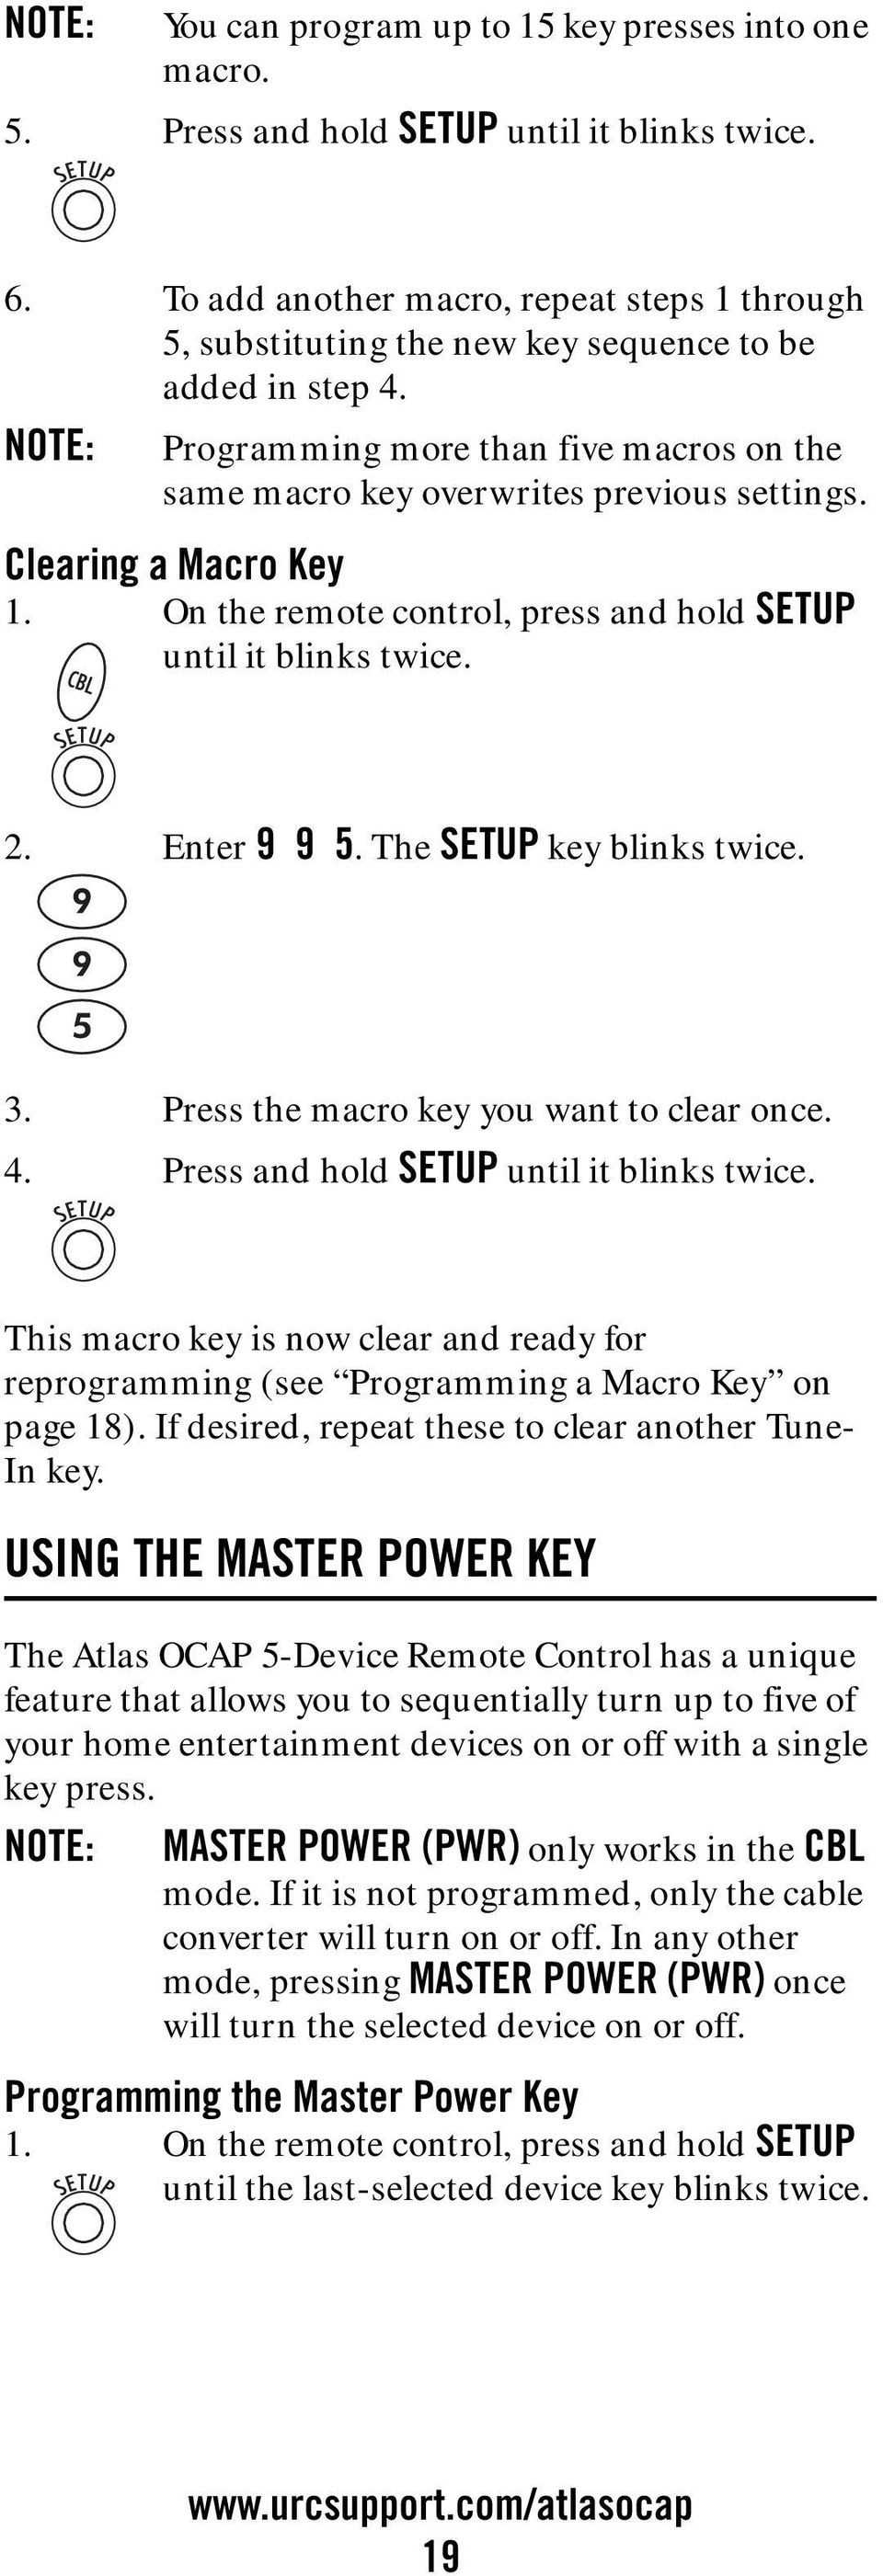 Clearing a Macro Key 1. On the remote control, press and hold SETUP until it blinks twice. 2. Enter 9 9 5. The SETUP key blinks twice. 3. Press the macro key you want to clear once. 4.